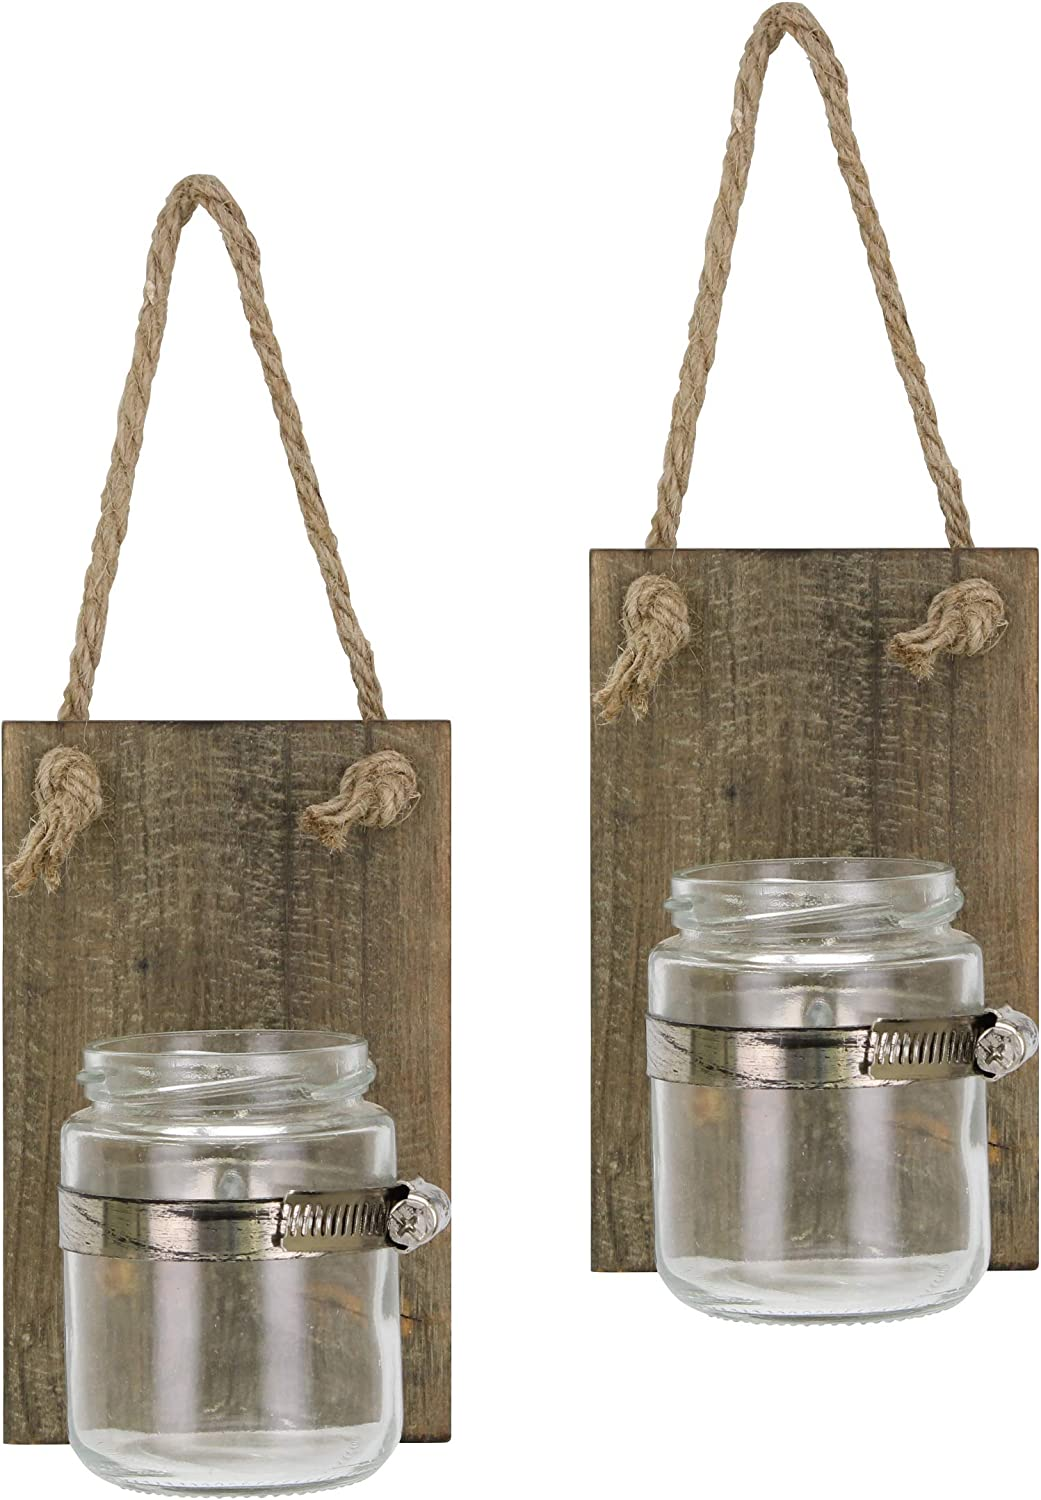 Stonebriar Rustic Natural Wood Mason Jar Wall Sconce Set with Hanging Loop, Set of 2,Brown